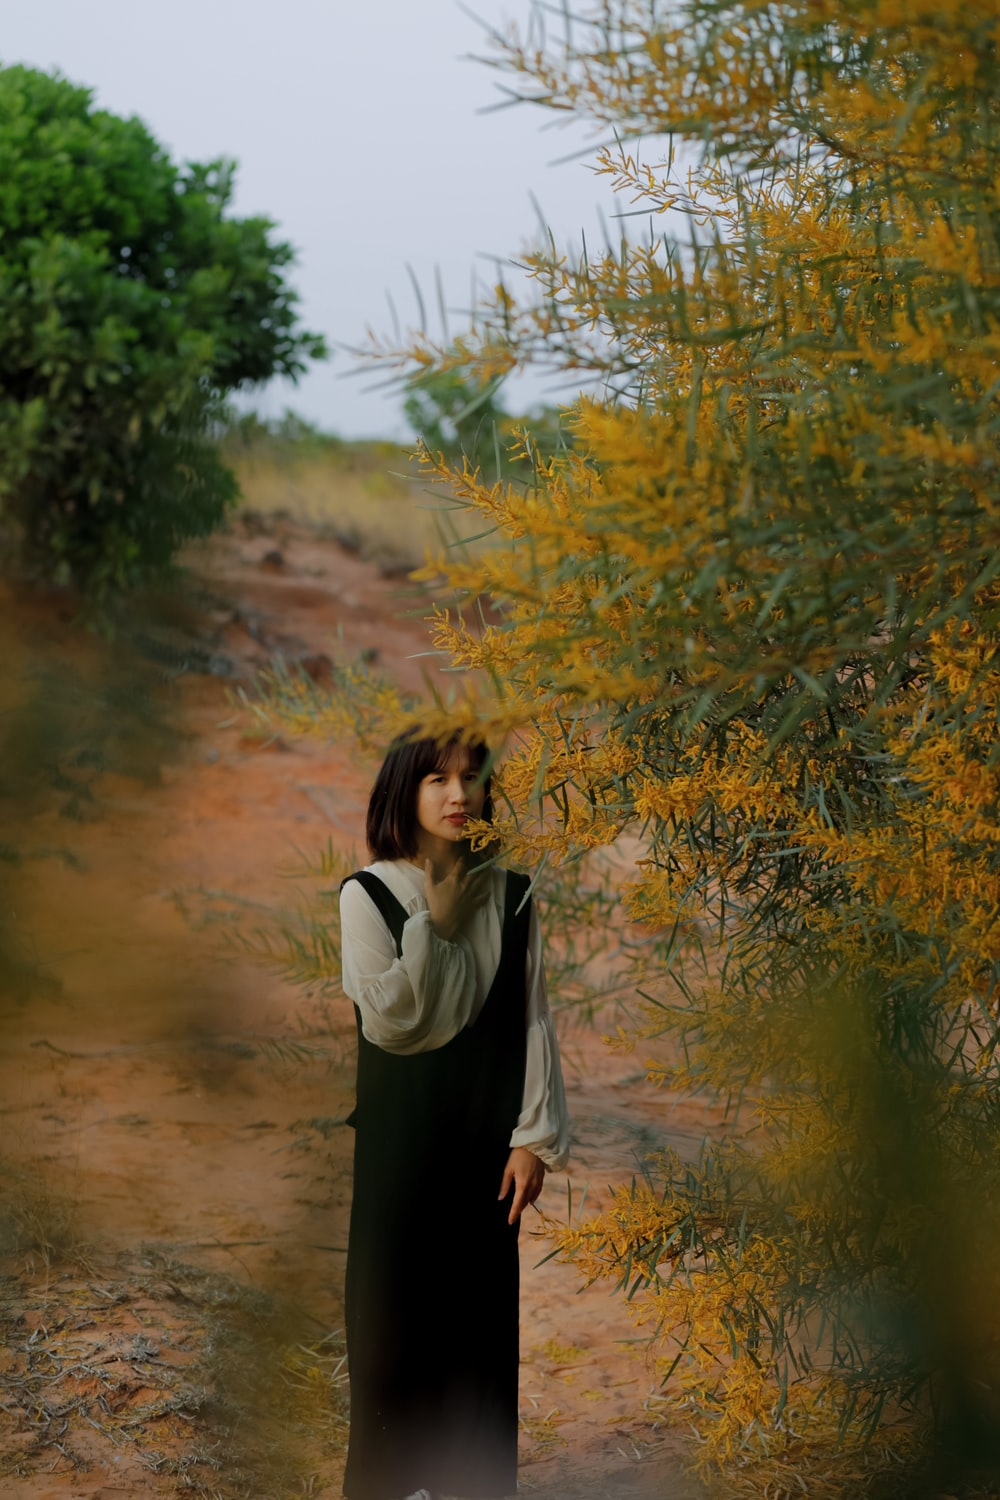 woman in white long sleeve shirt and black skirt standing near green tree during daytime